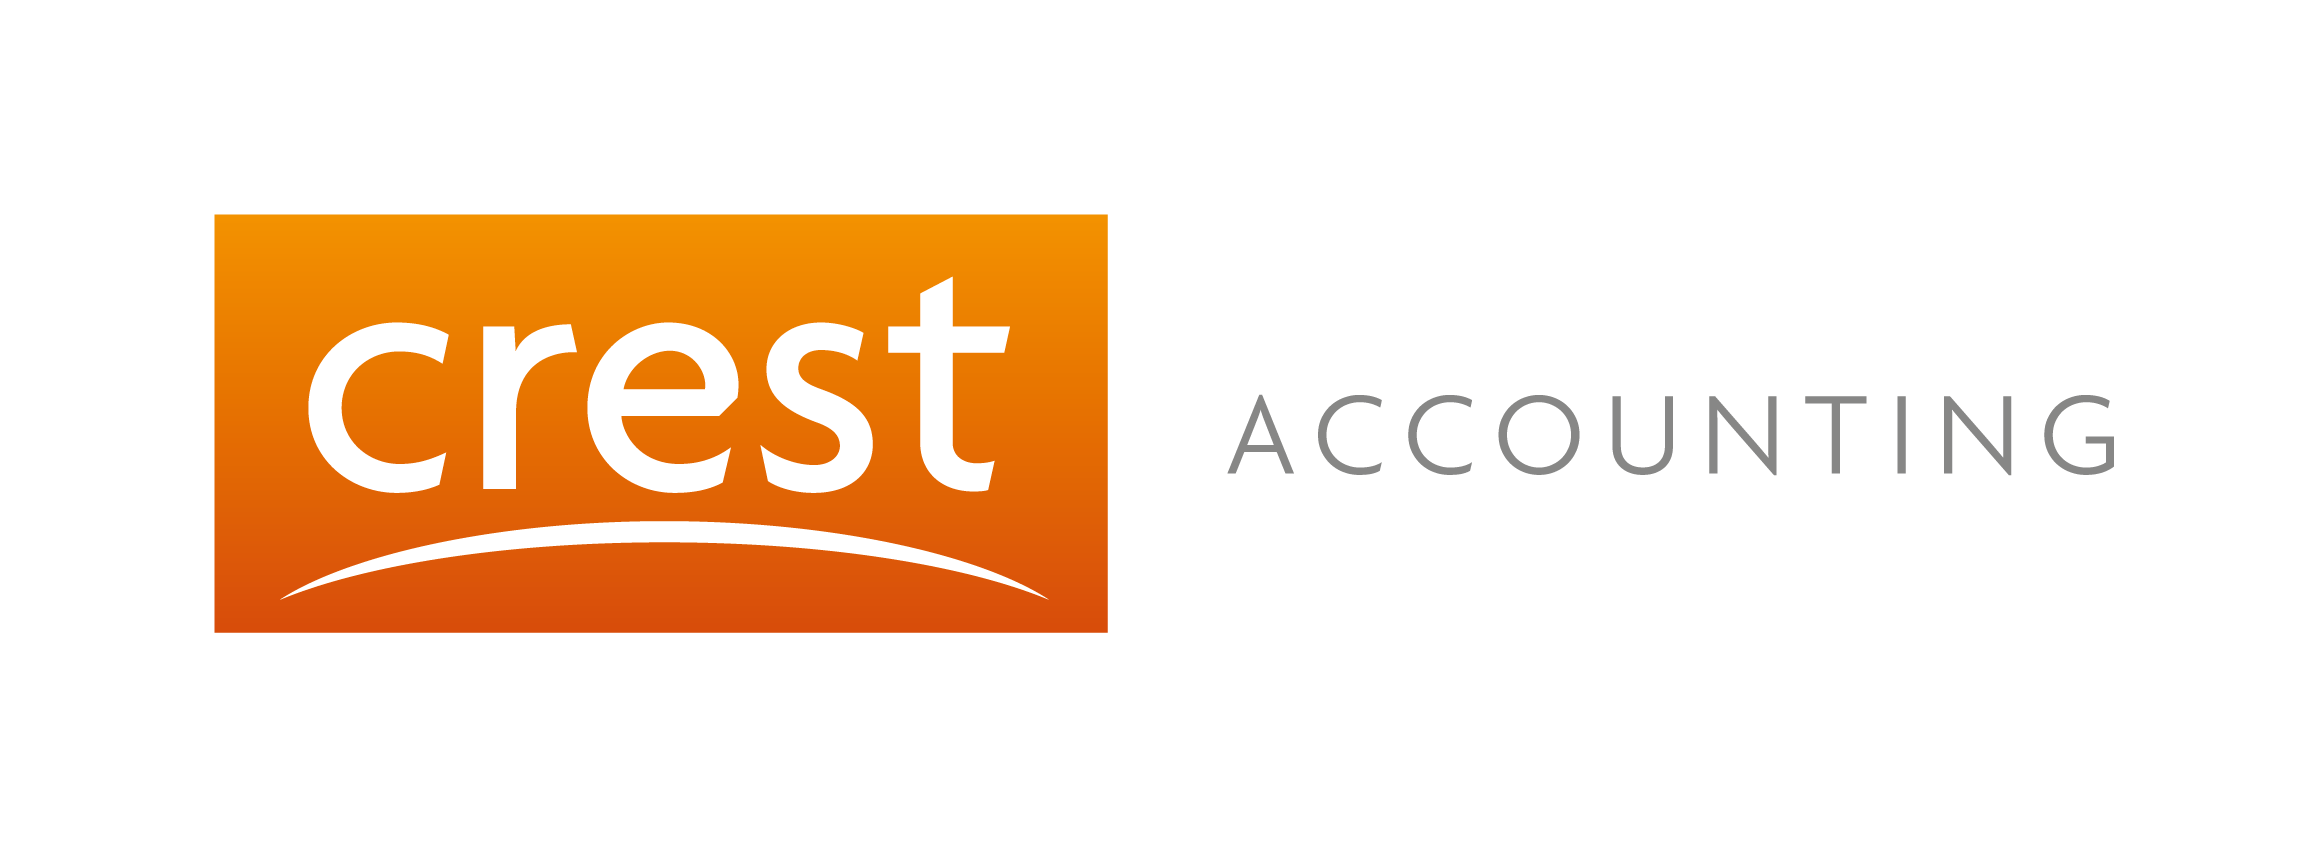 Crest Accounting